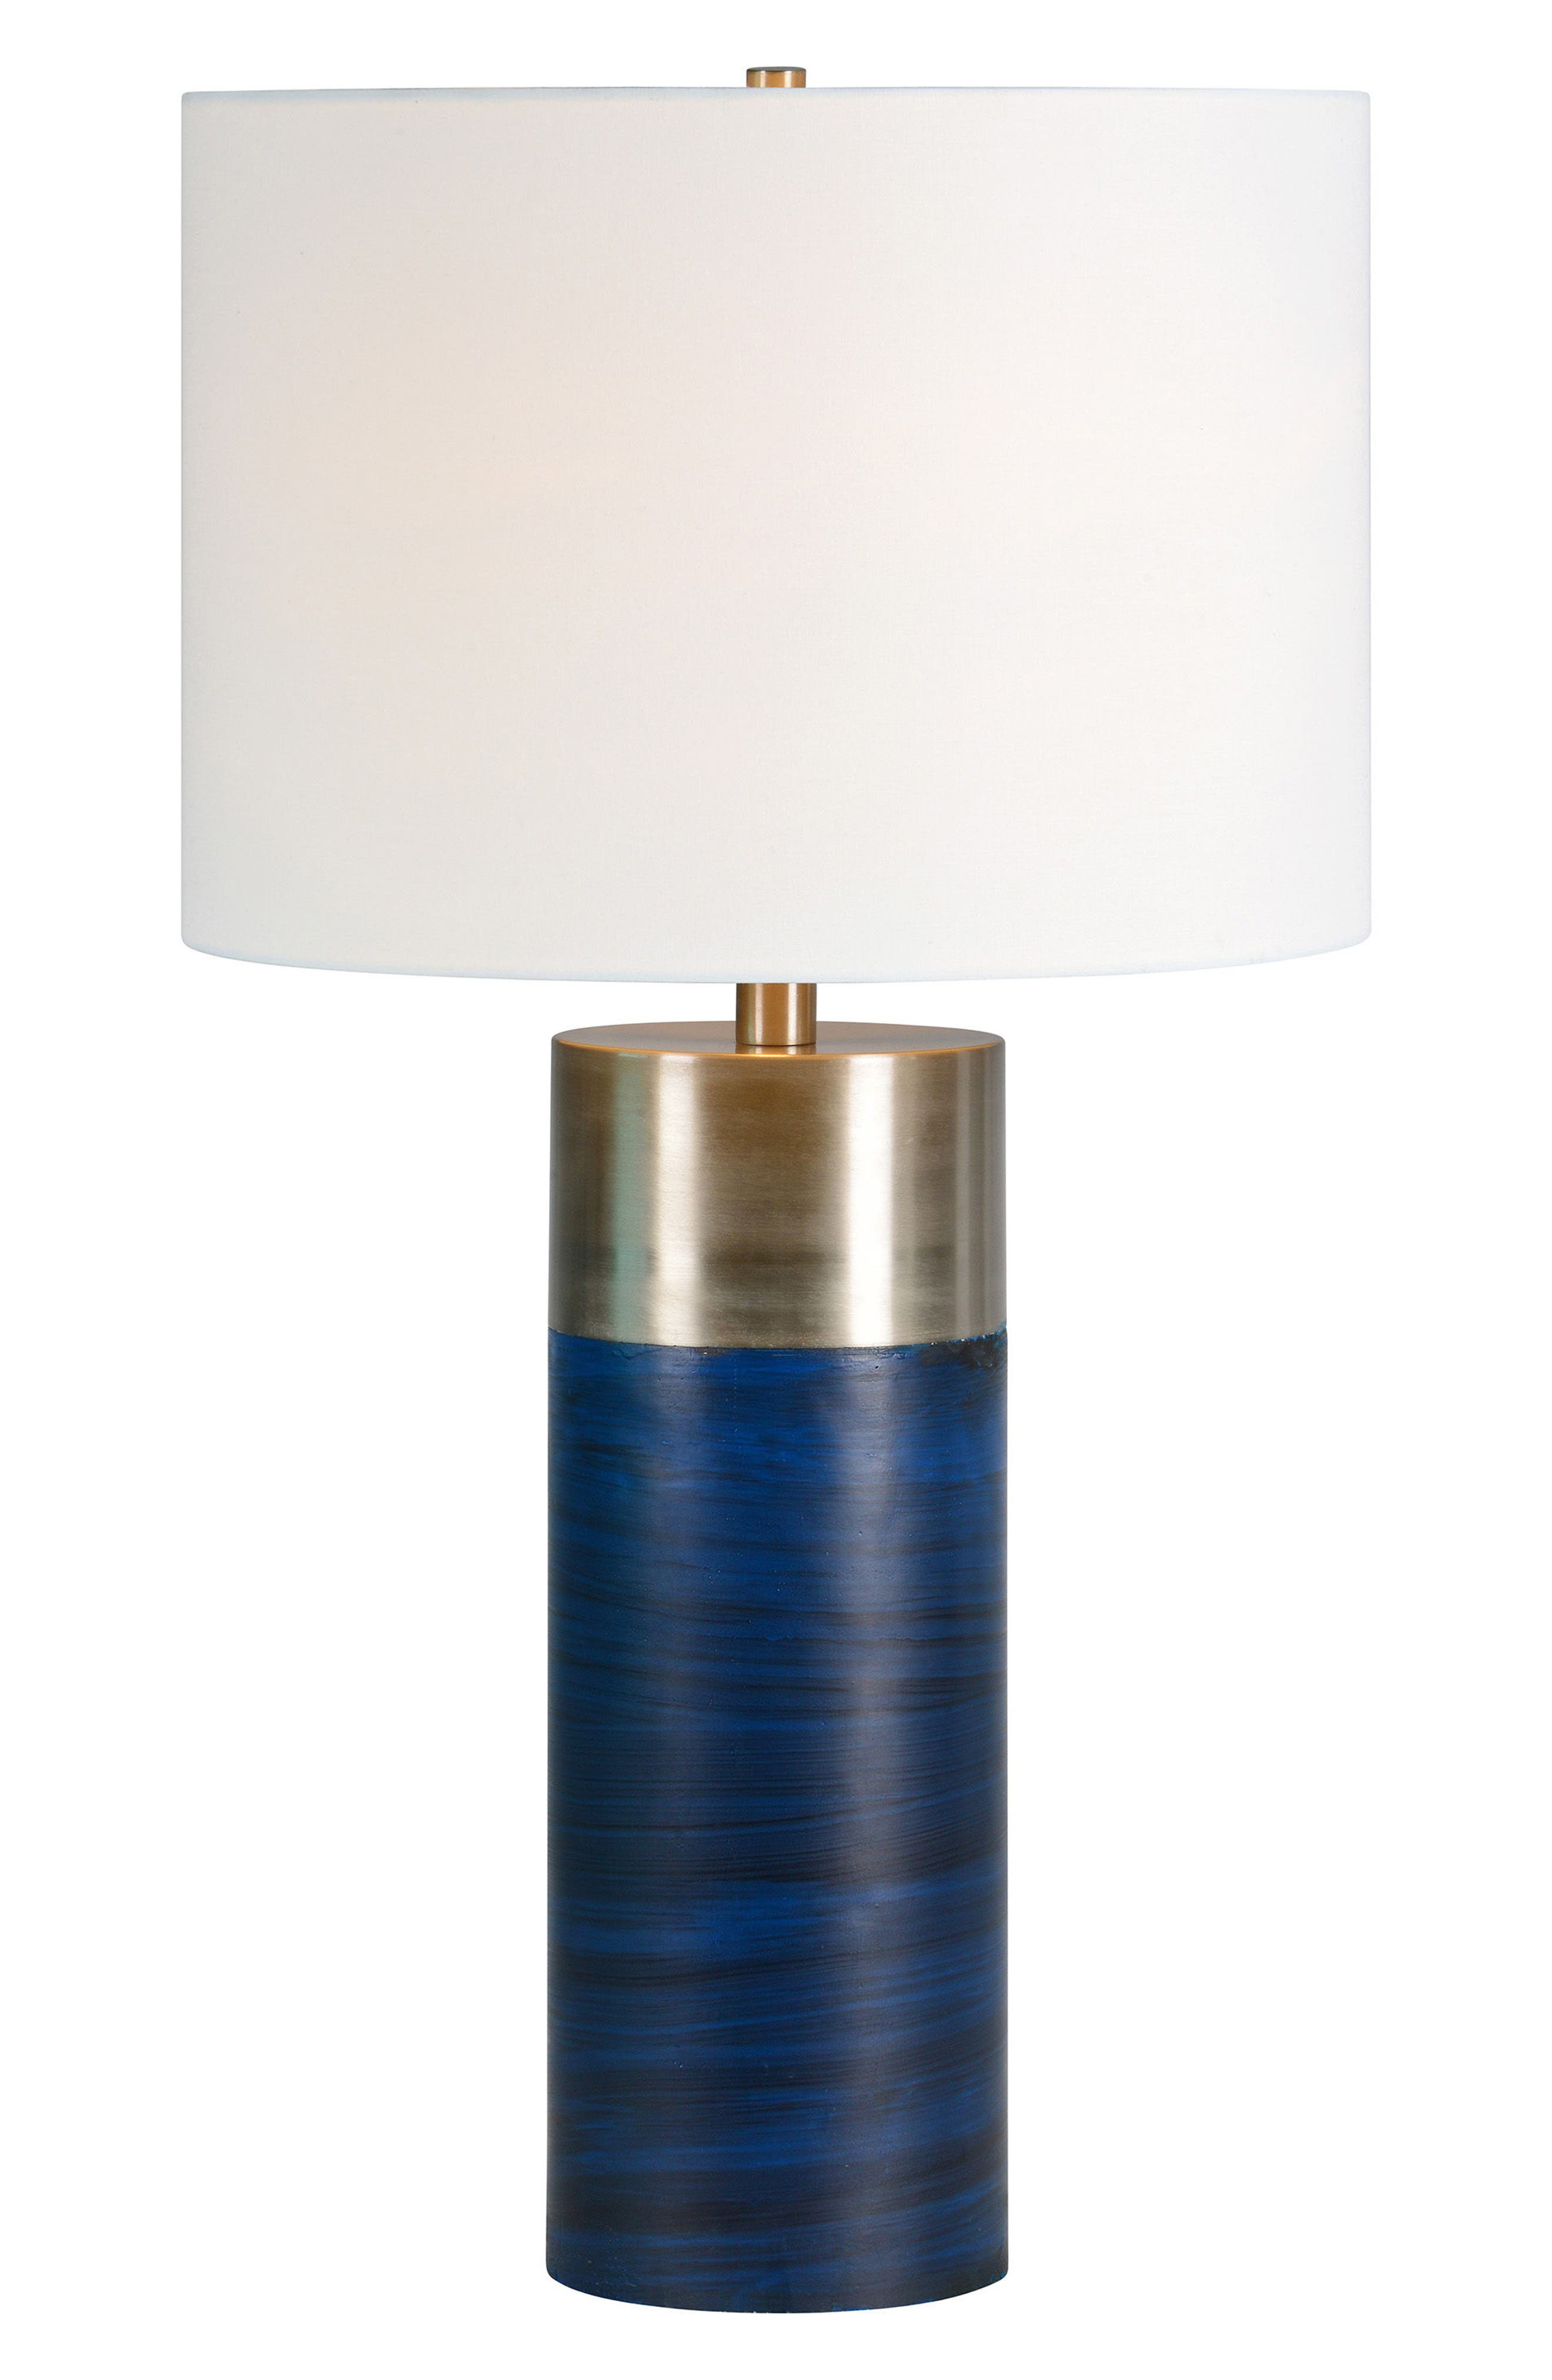 Glint Table Lamp,                         Main,                         color, Blue/ Satin Nickel